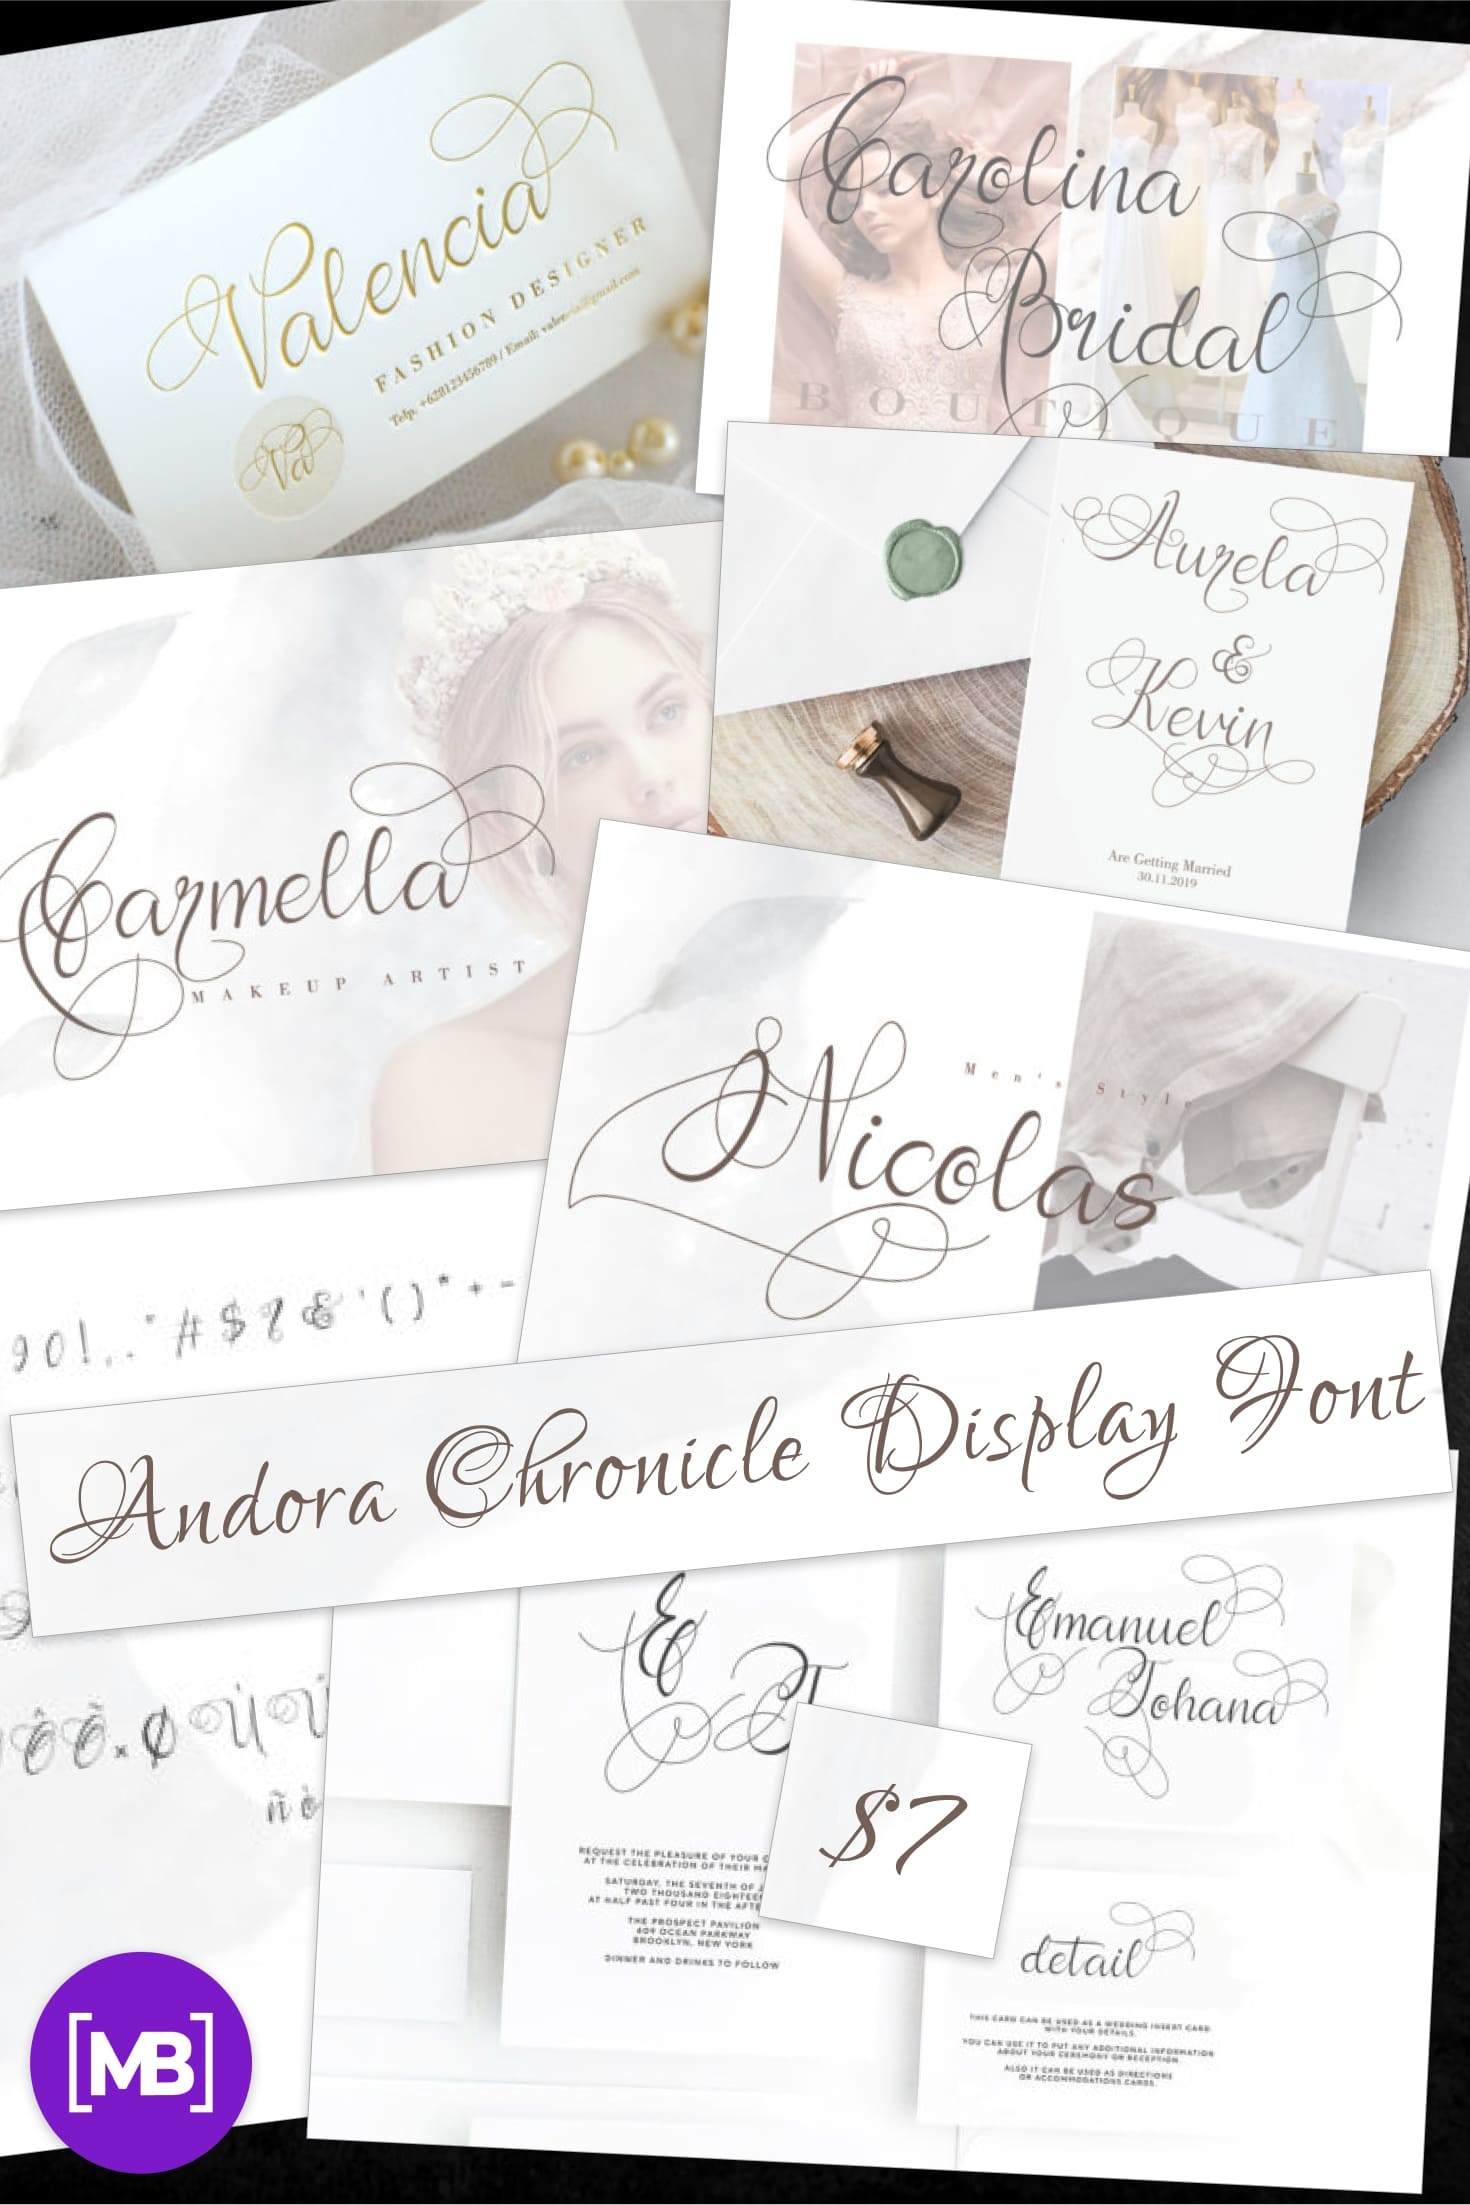 Pinterest Image: Best Chronicle Display Font 2020 | Andora Chronicle Display Font.